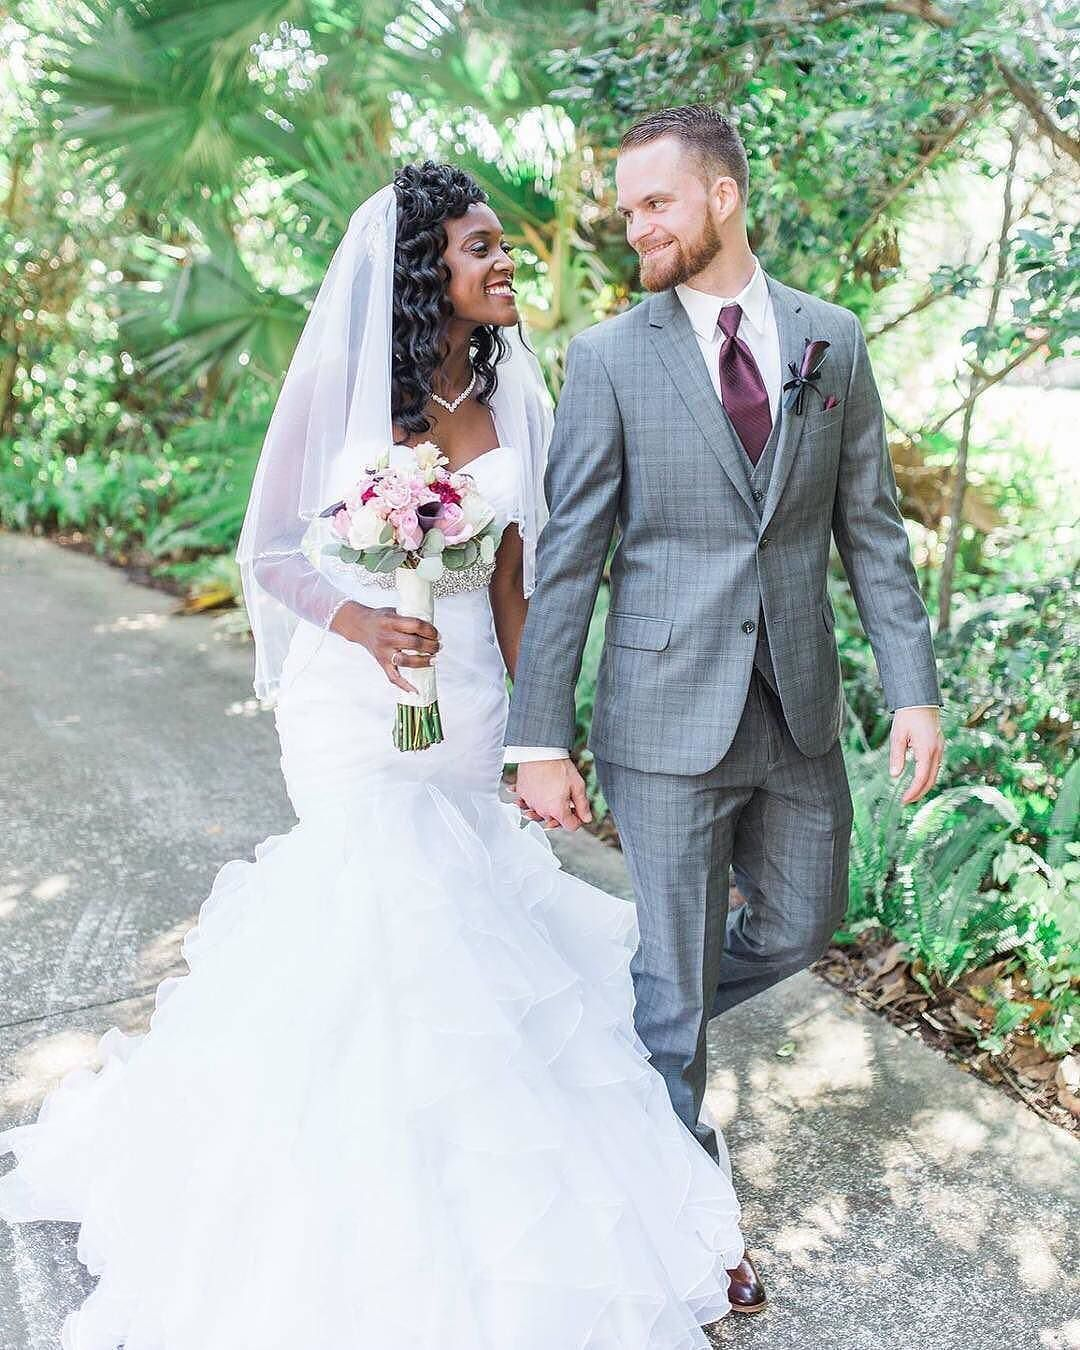 Wedding dresses richmond va  Those smiles and that dress Find the gown for your dream day by